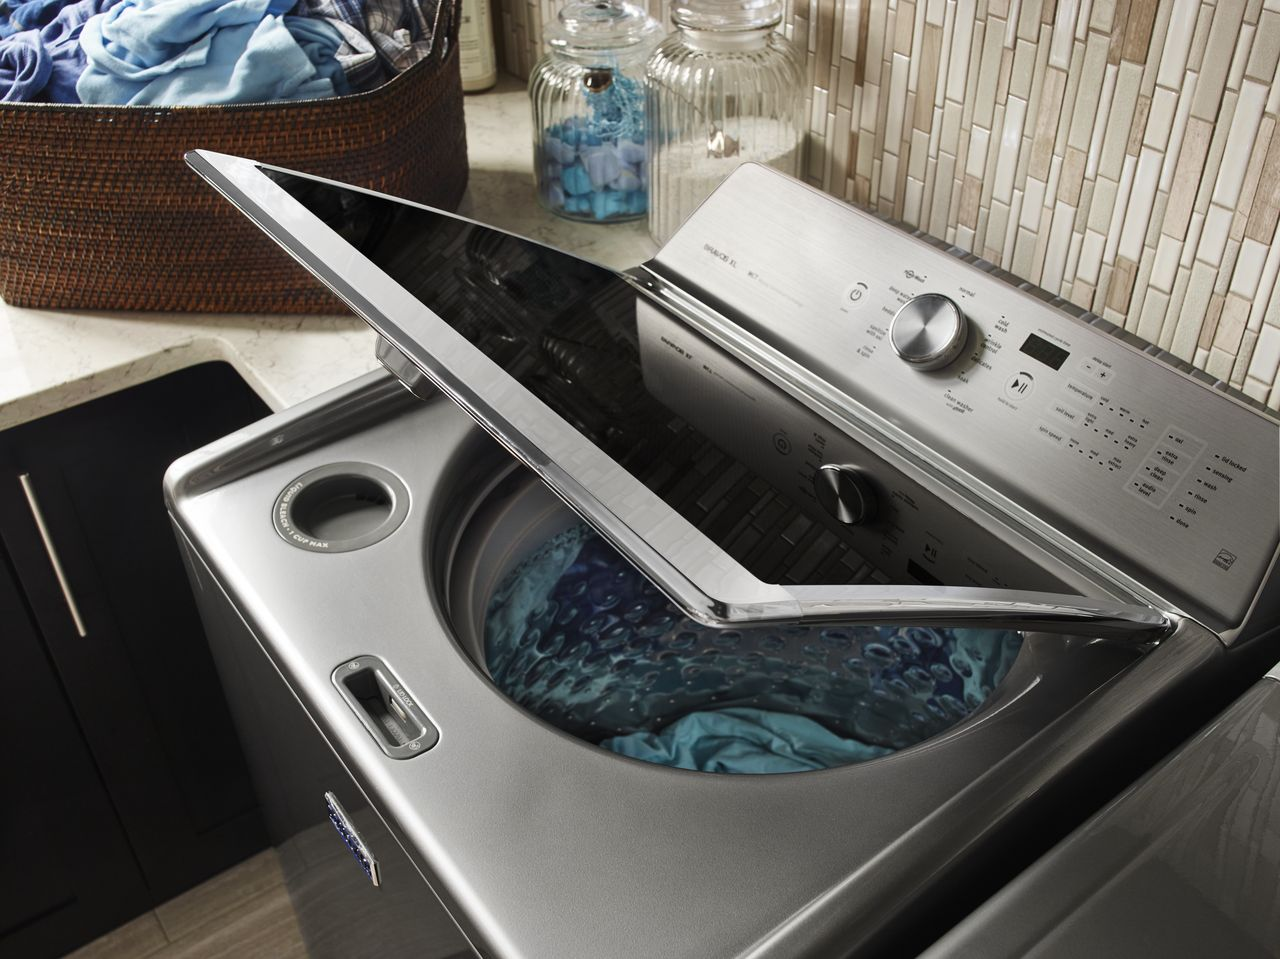 """Featured image for """"How to Balance a Washer That Vibrates Excessively"""""""